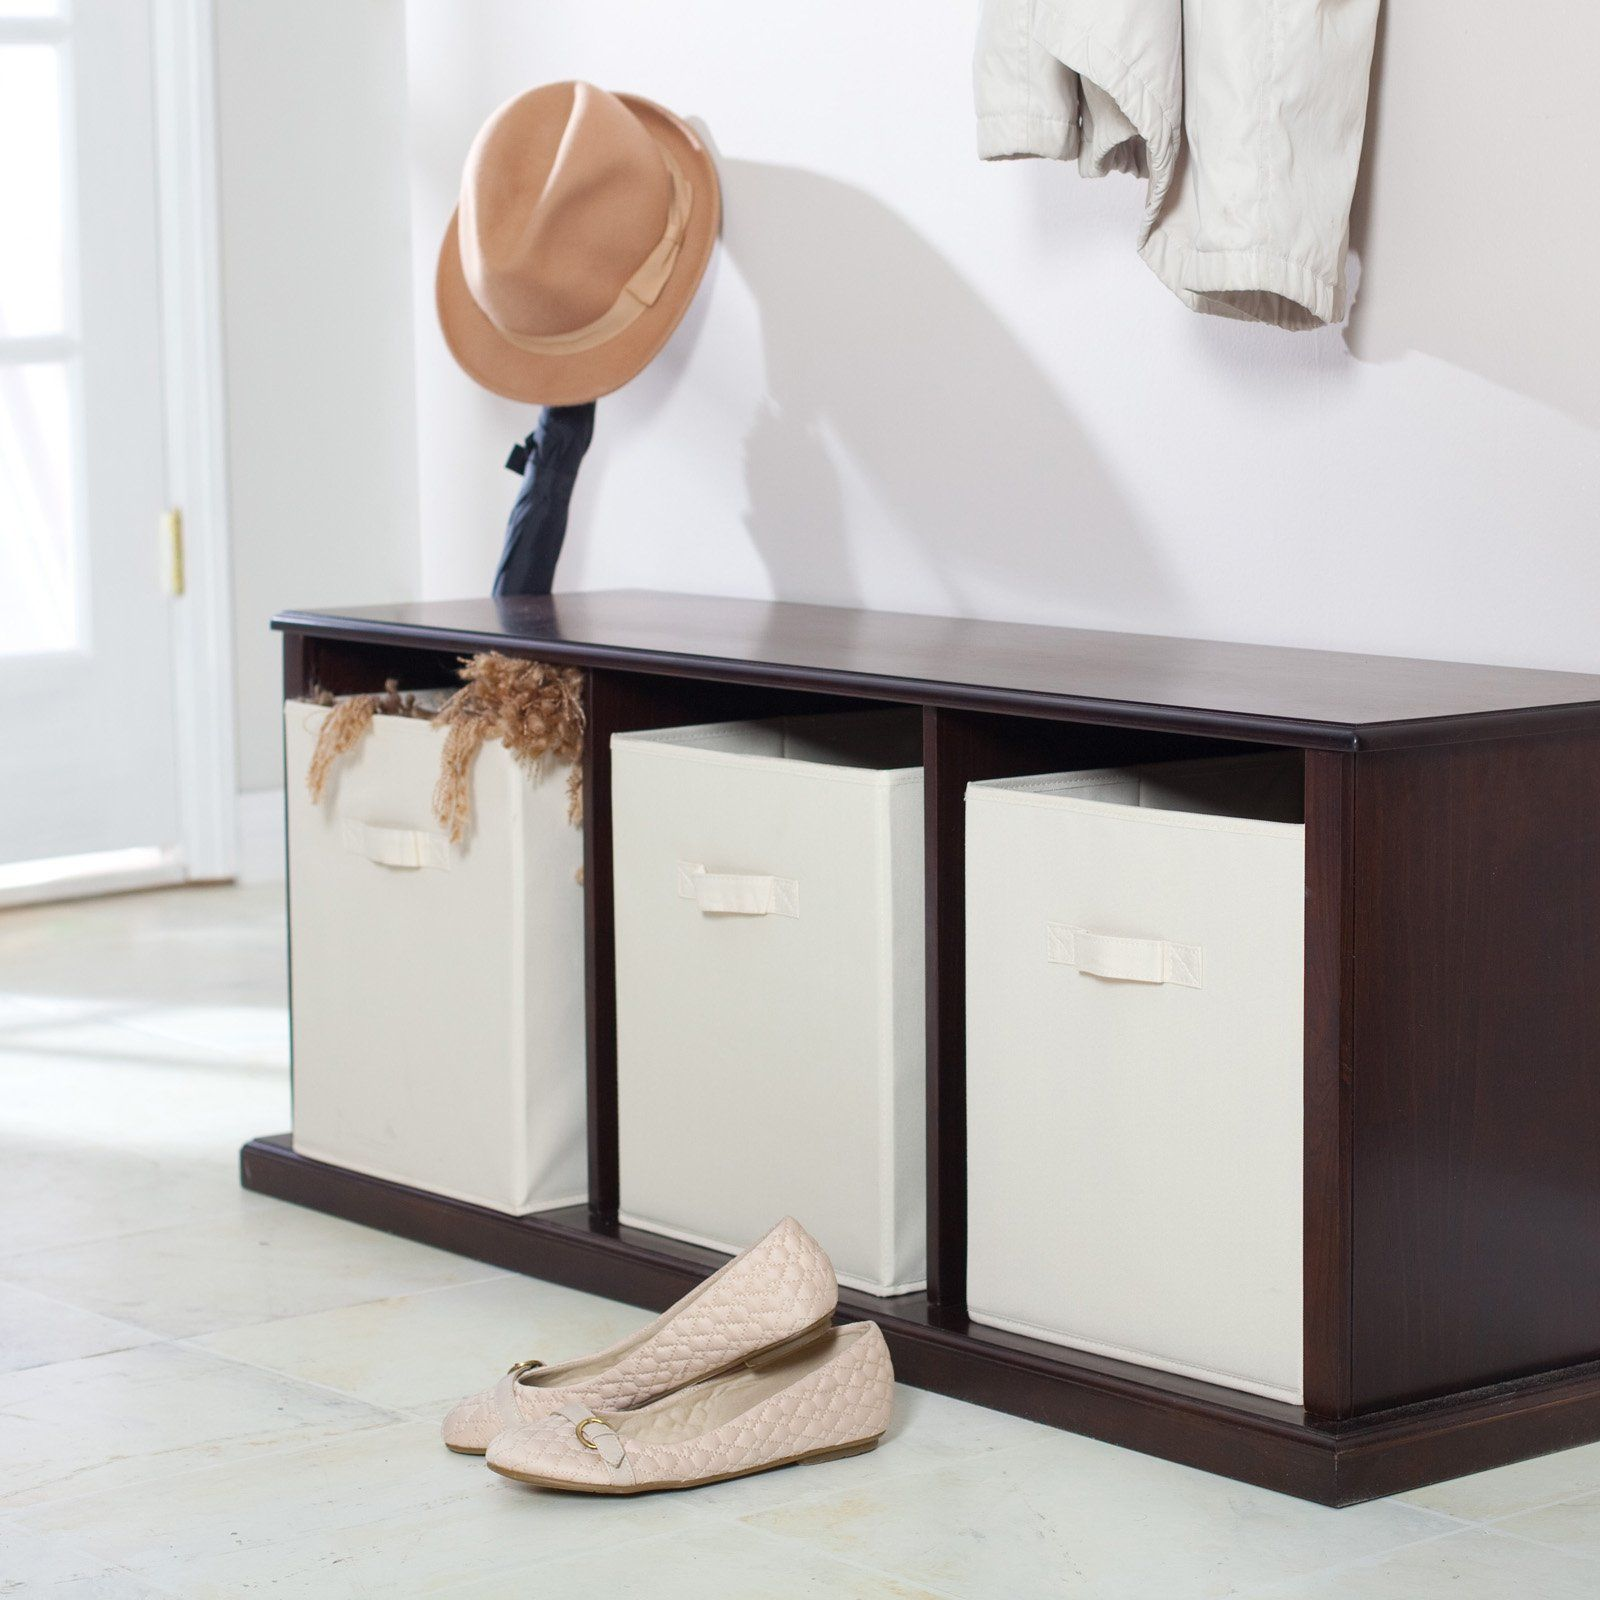 Prime Attractive 3 Cubby Storage Bench For Any Room Make An Ocoug Best Dining Table And Chair Ideas Images Ocougorg